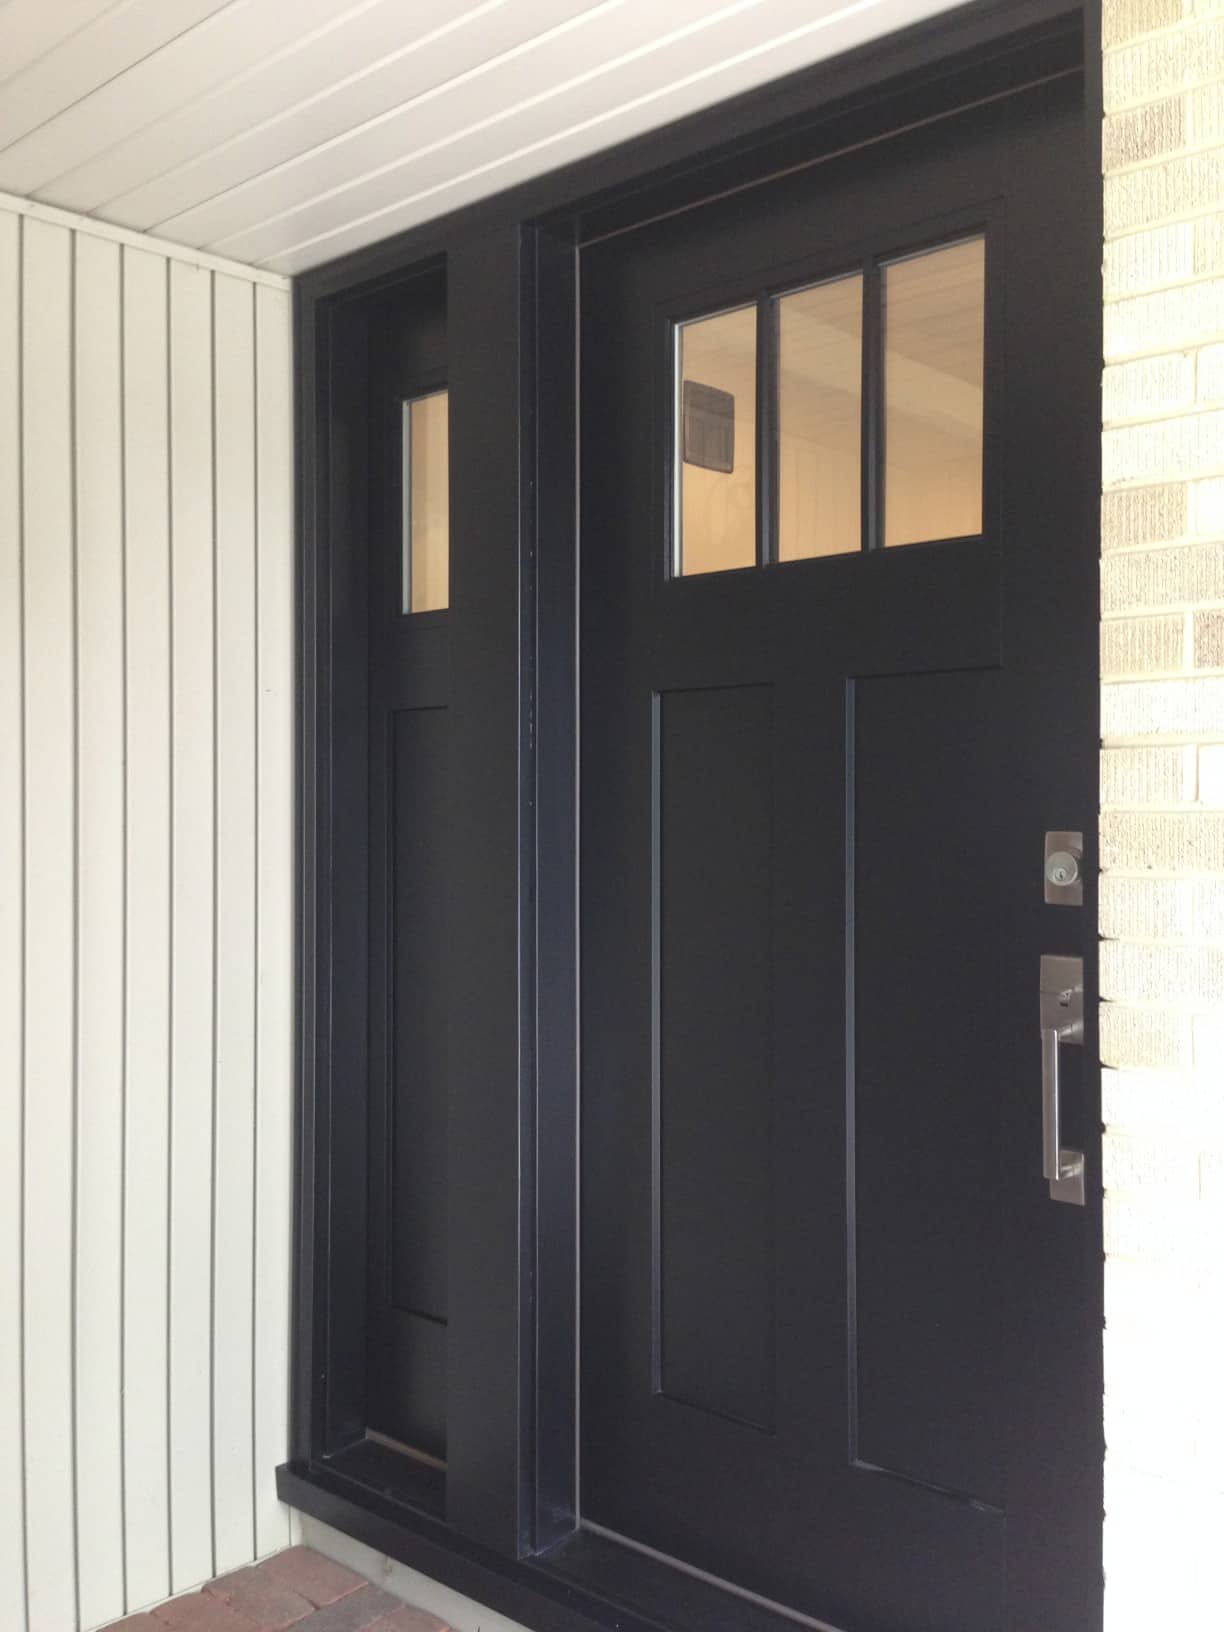 1632 #846947 Chicago's Best Fiberglass Entry Doors Sahara Window And Dors picture/photo Fibreglass Exterior Doors 41191224